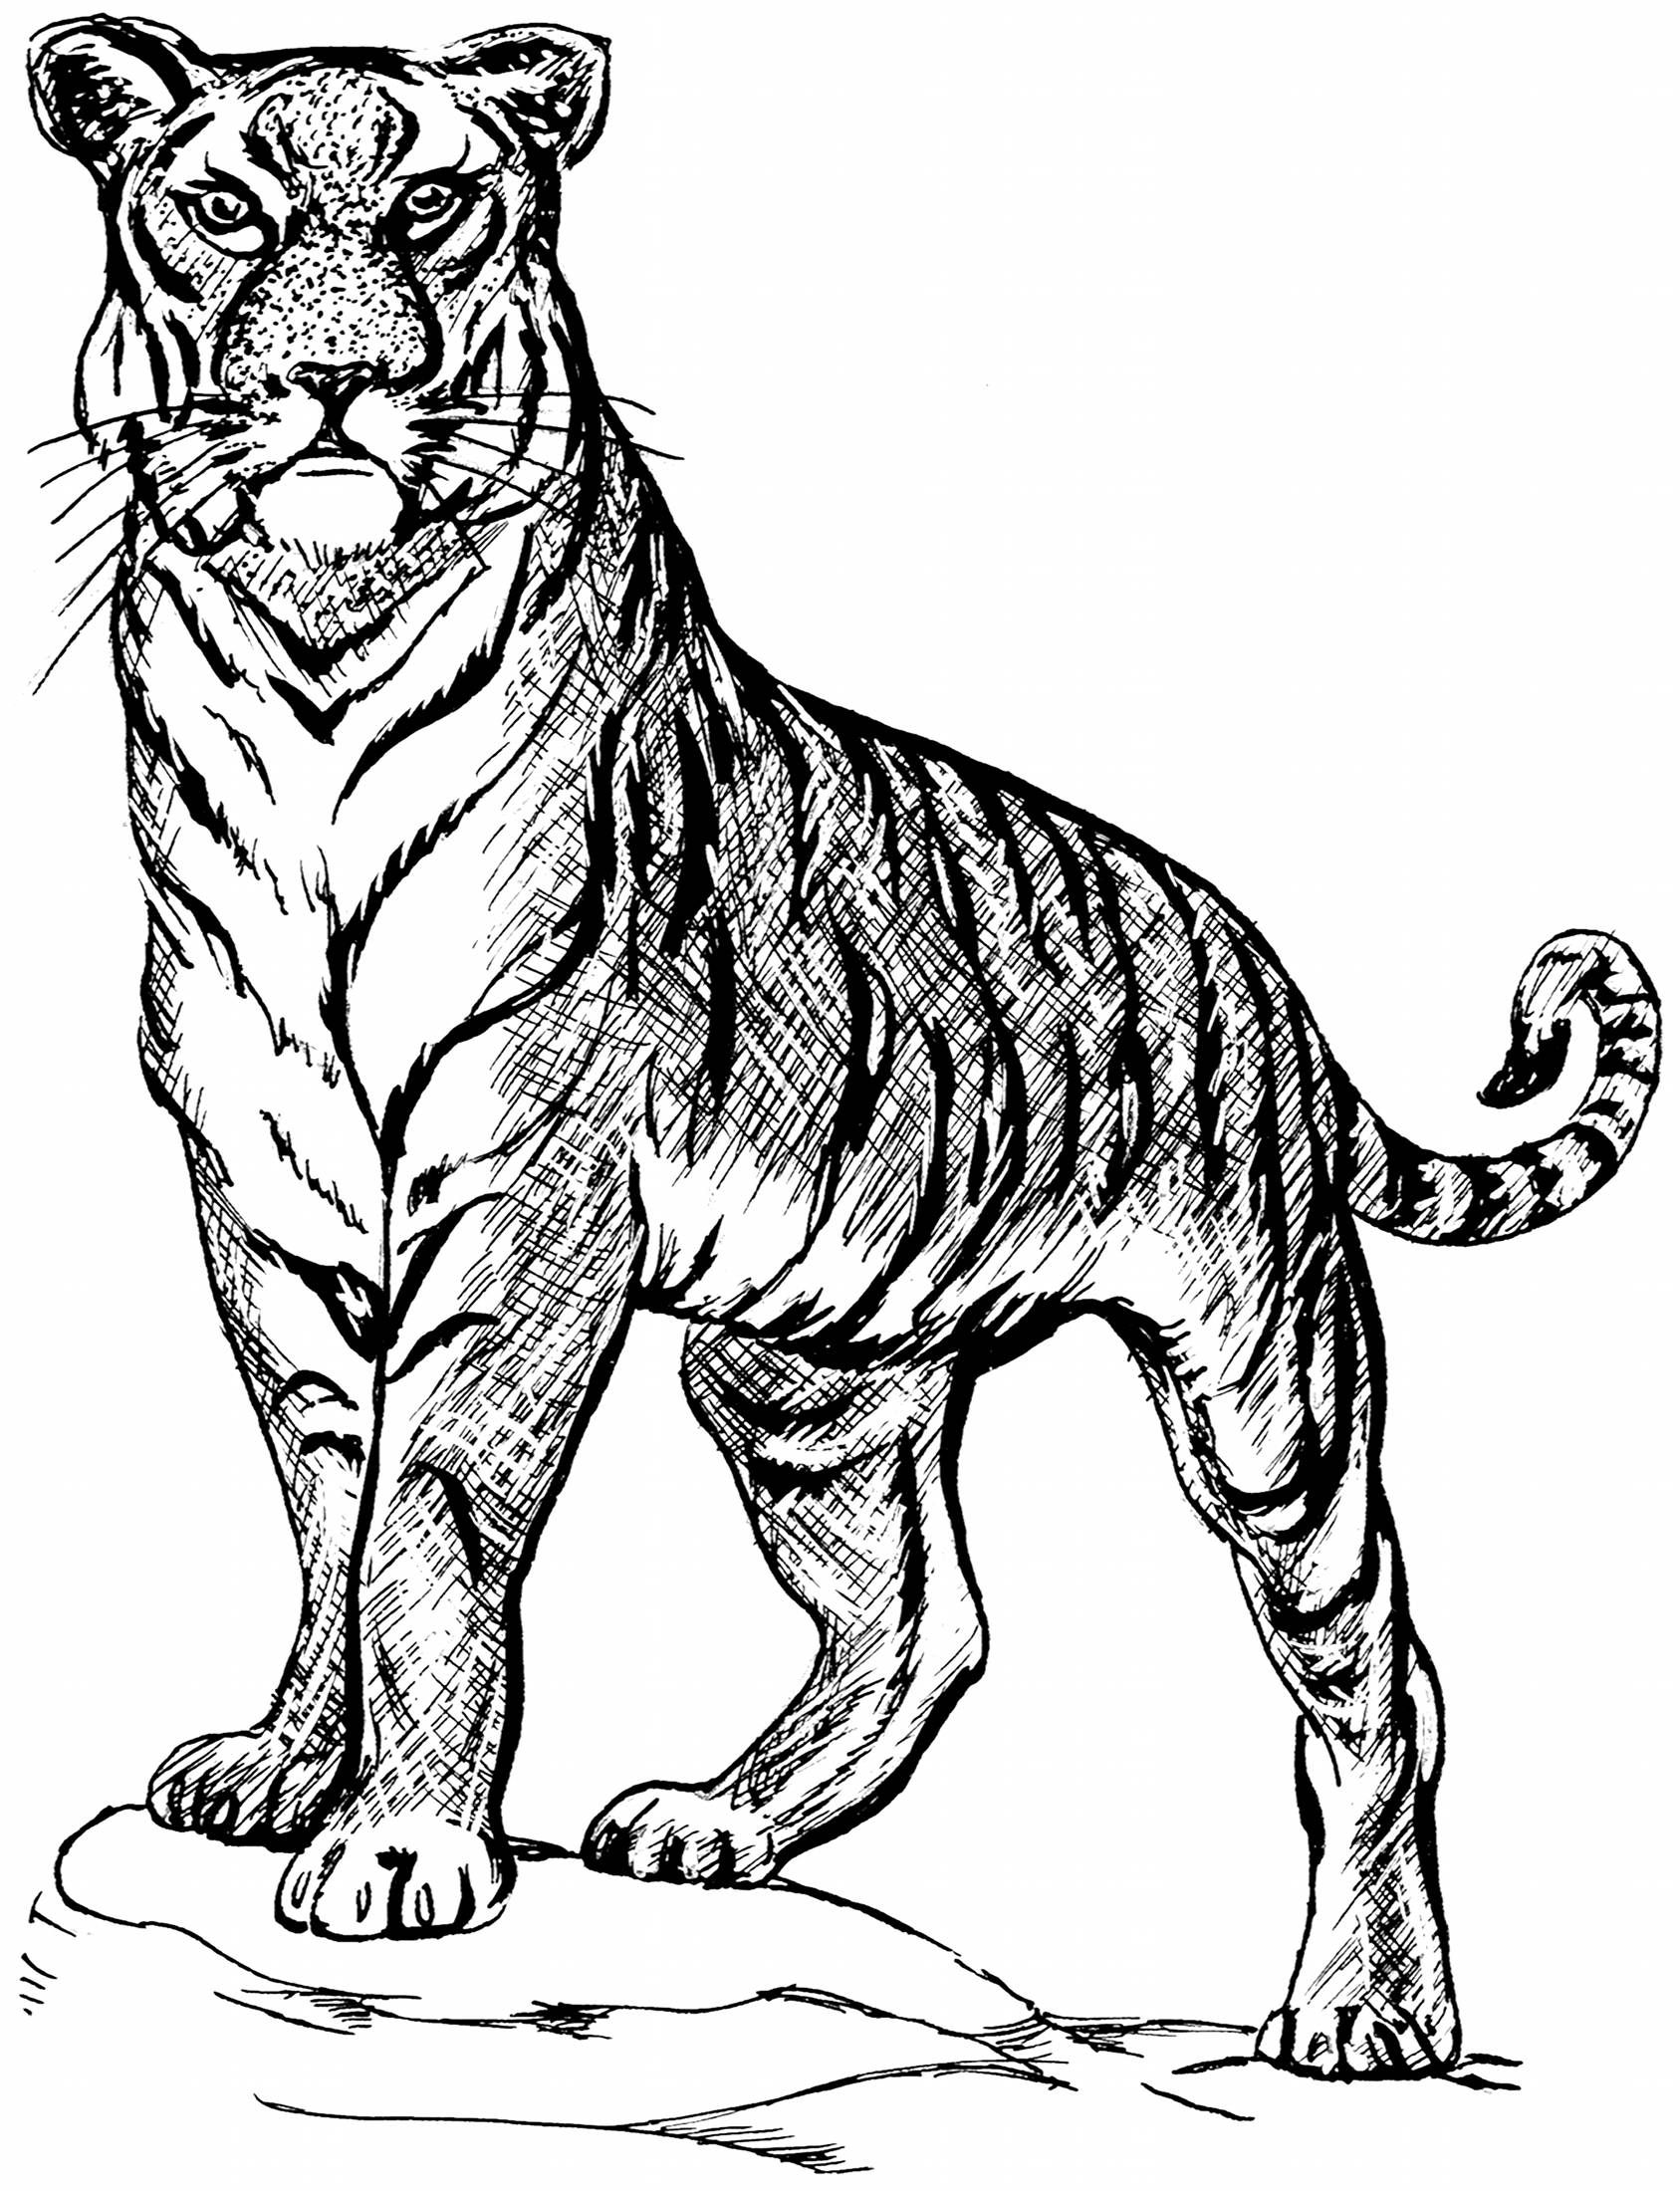 Tiger Line Drawings For Coloring Tiger Illustration Tiger